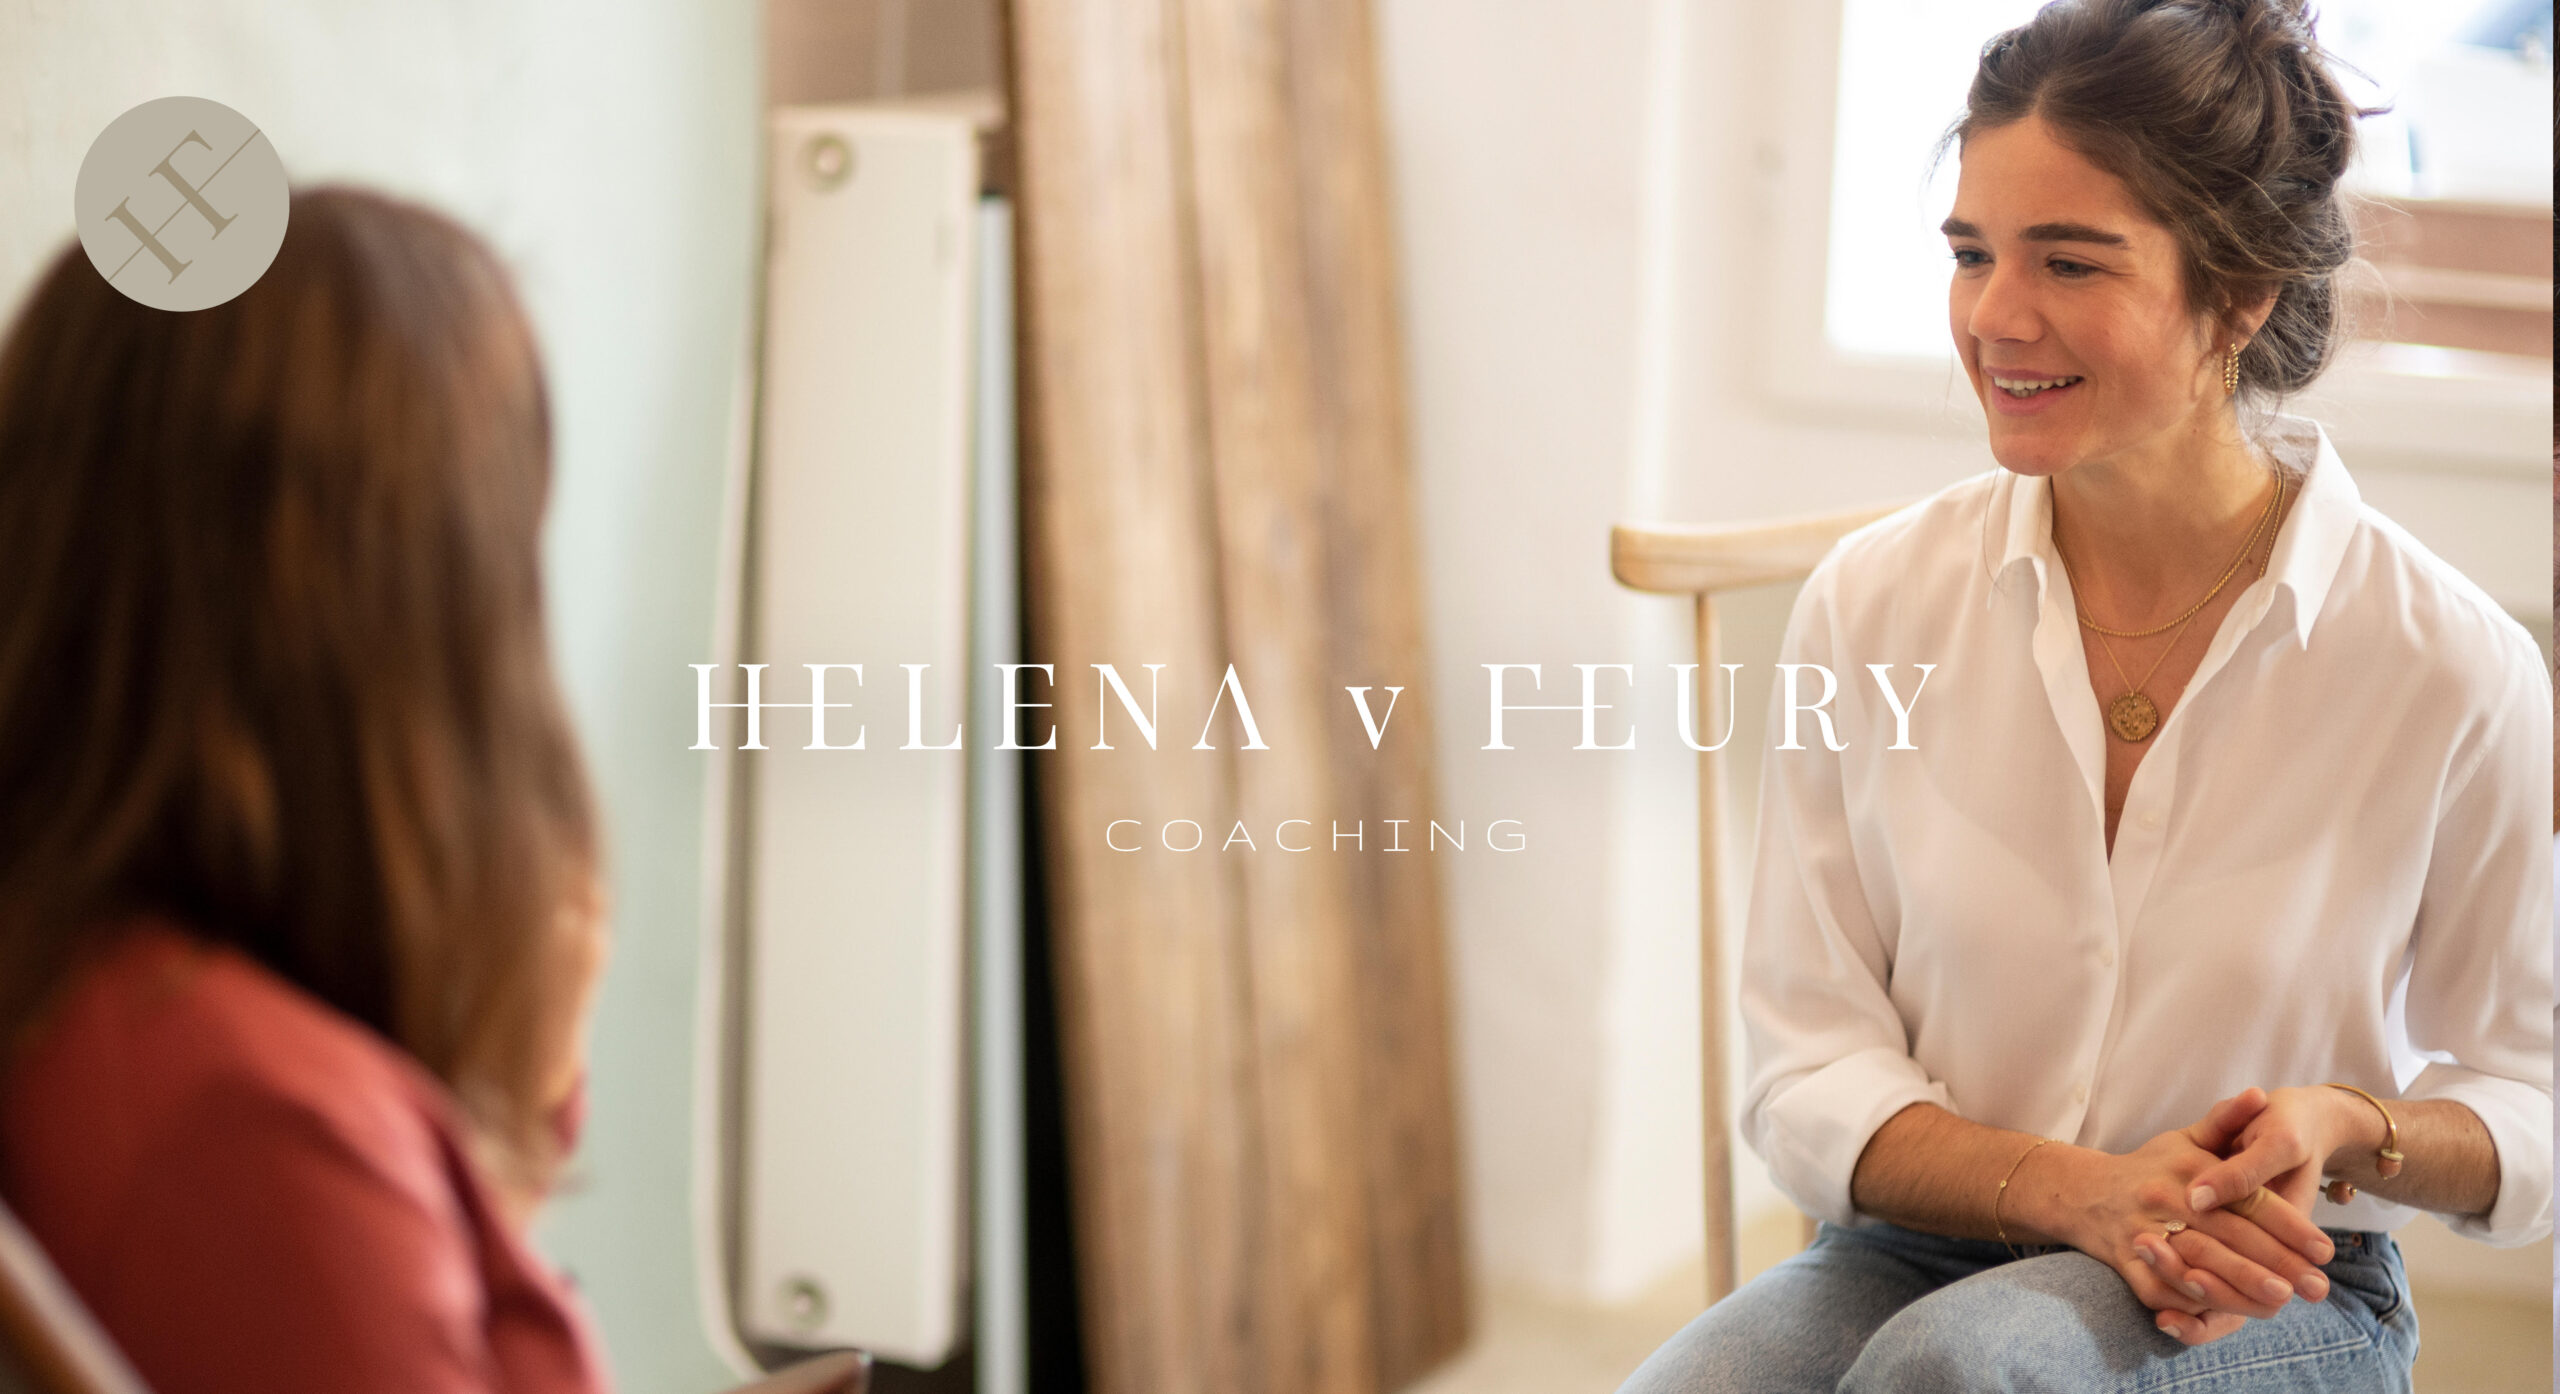 Helena von Feury Personal and Business Coaching